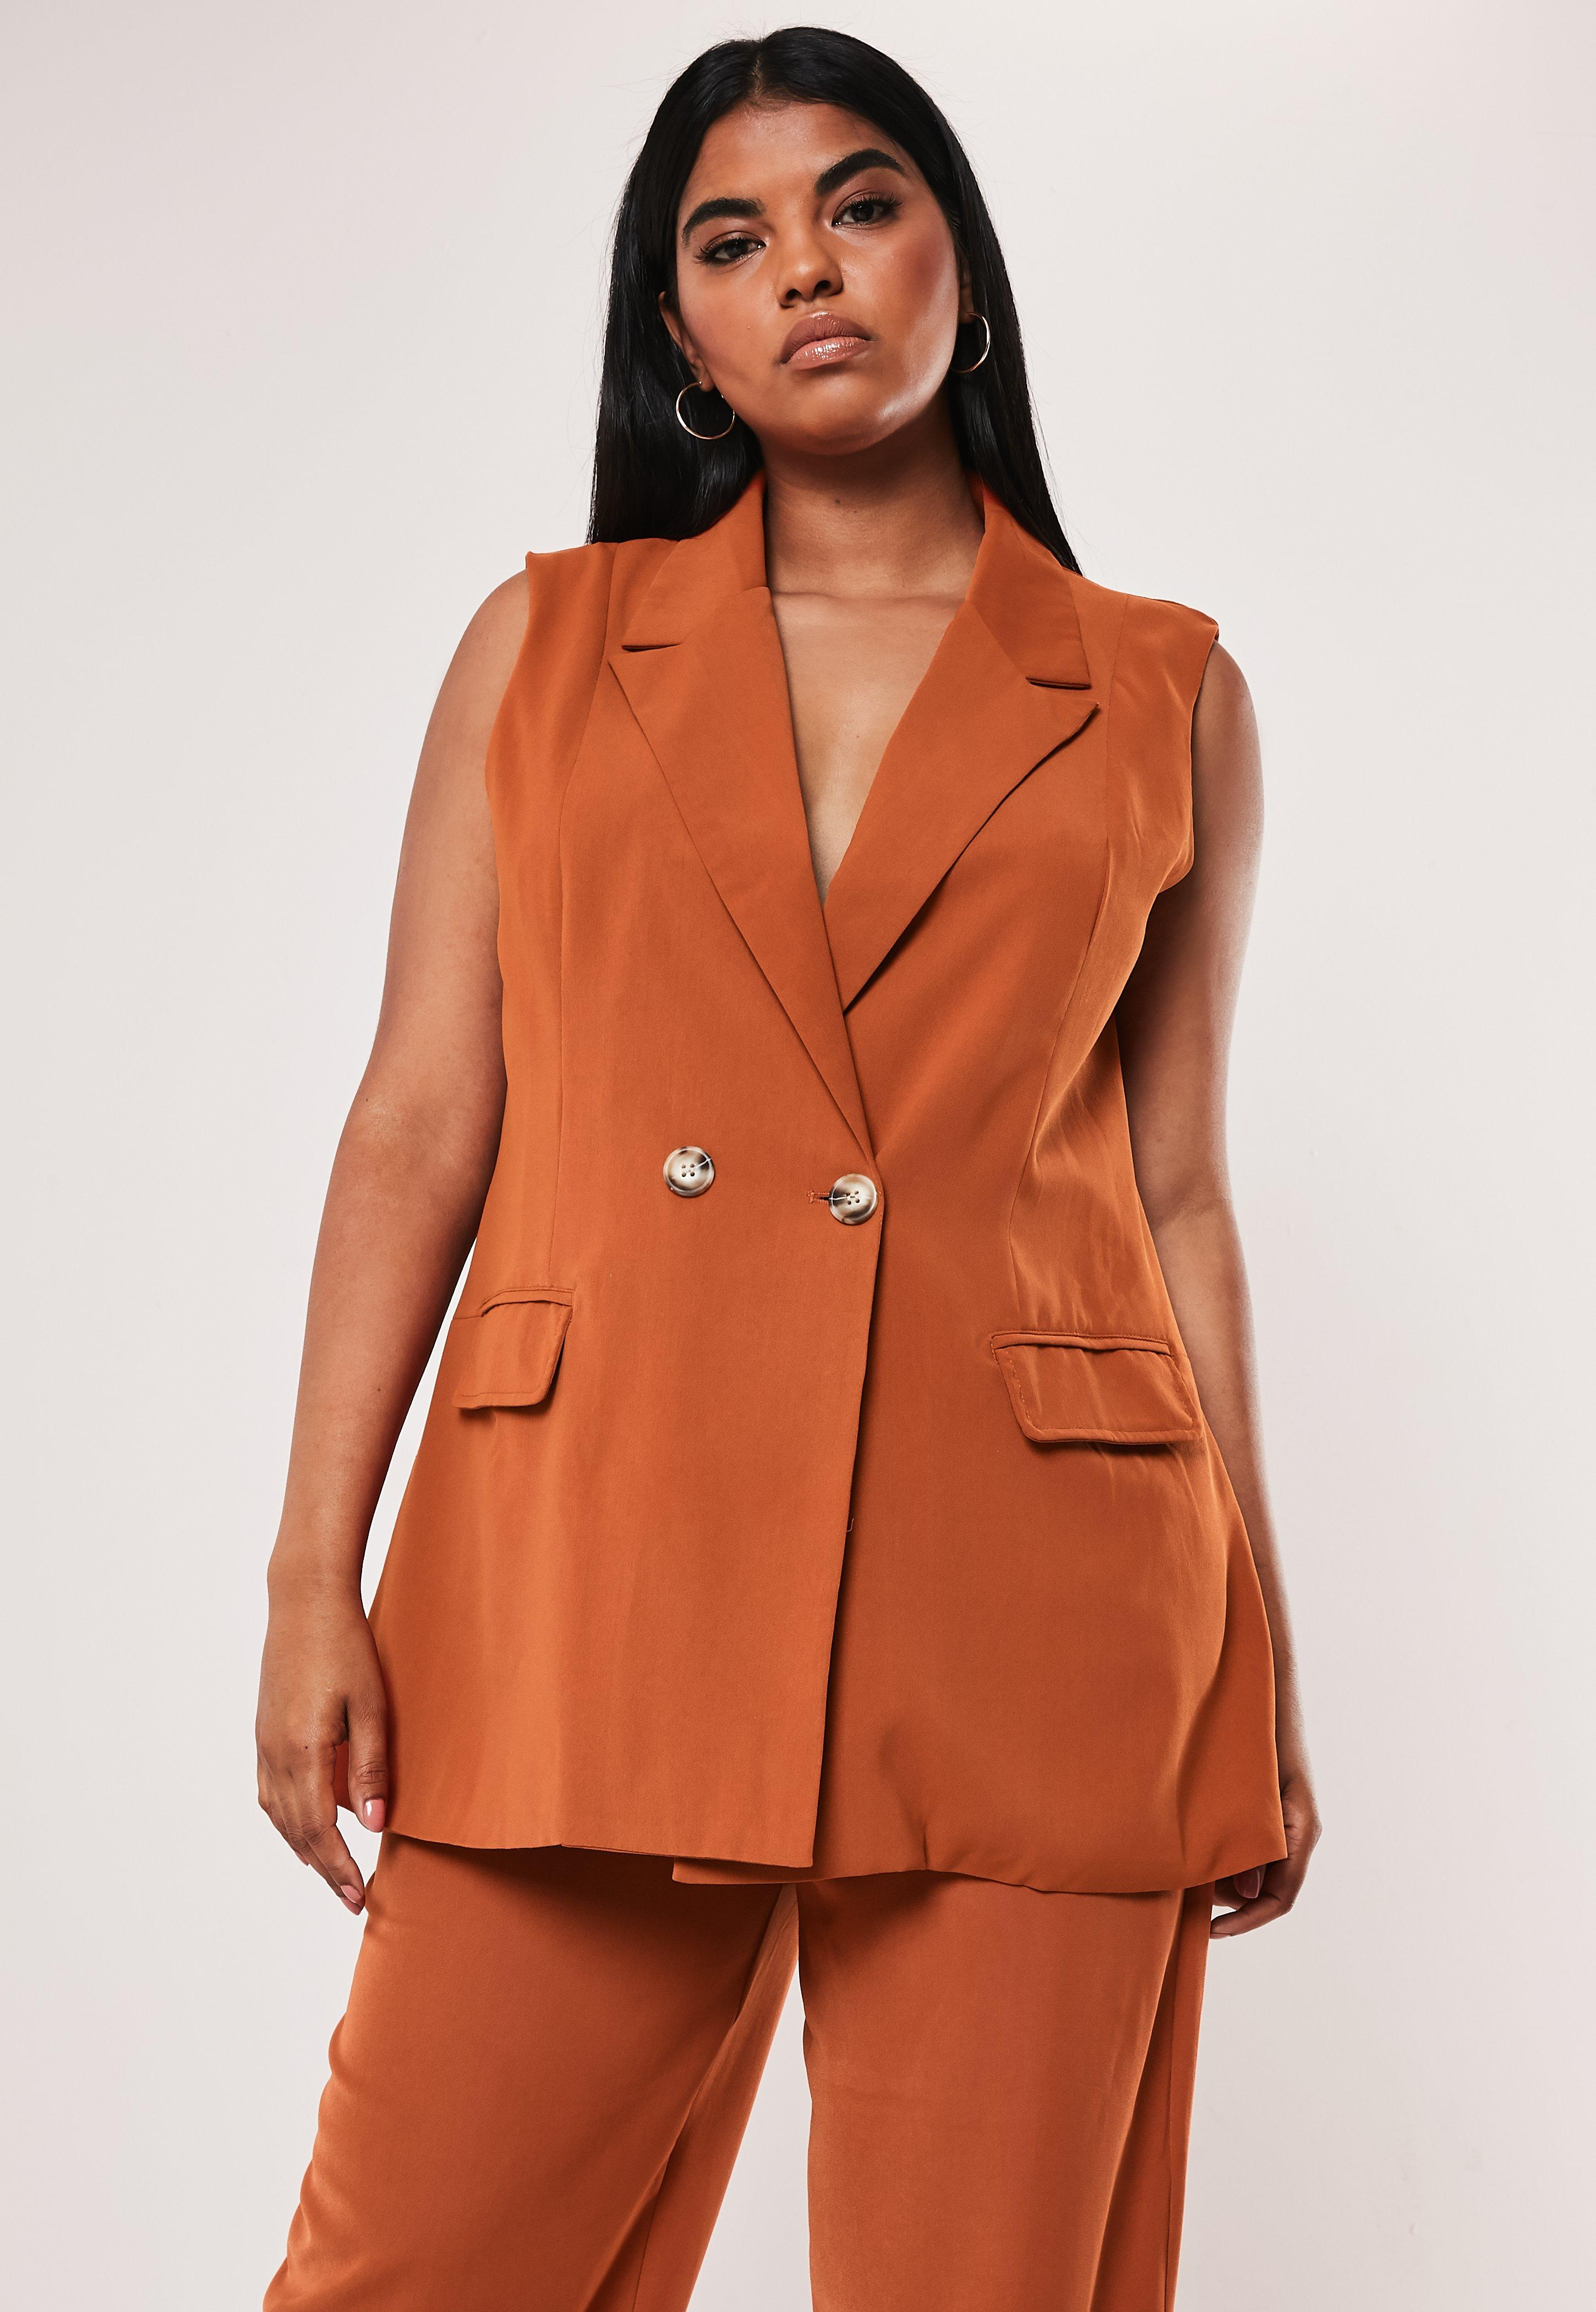 90b6b8965 Two Piece Sets - Two Piece Dresses, Co-ords & Outfits | Missguided